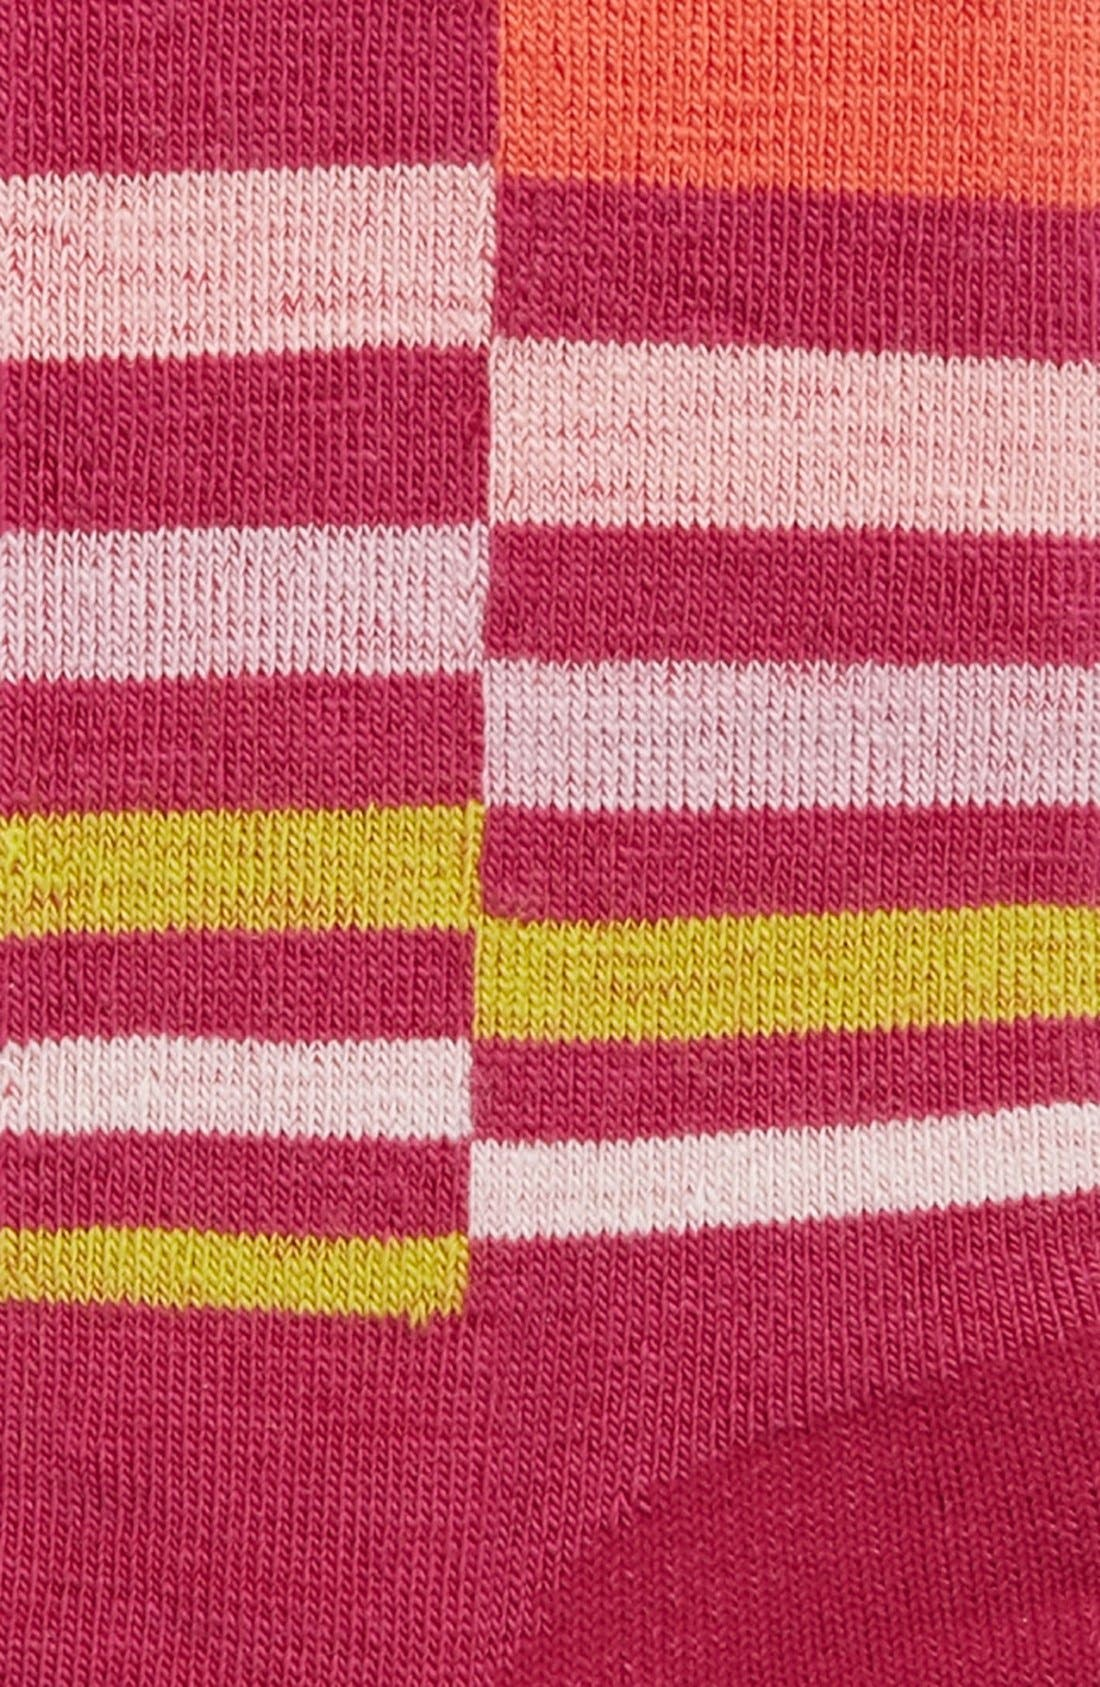 Alternate Image 2  - Smartwool 'Wintersport Stripe' Socks (Little Girls & Big Girls)